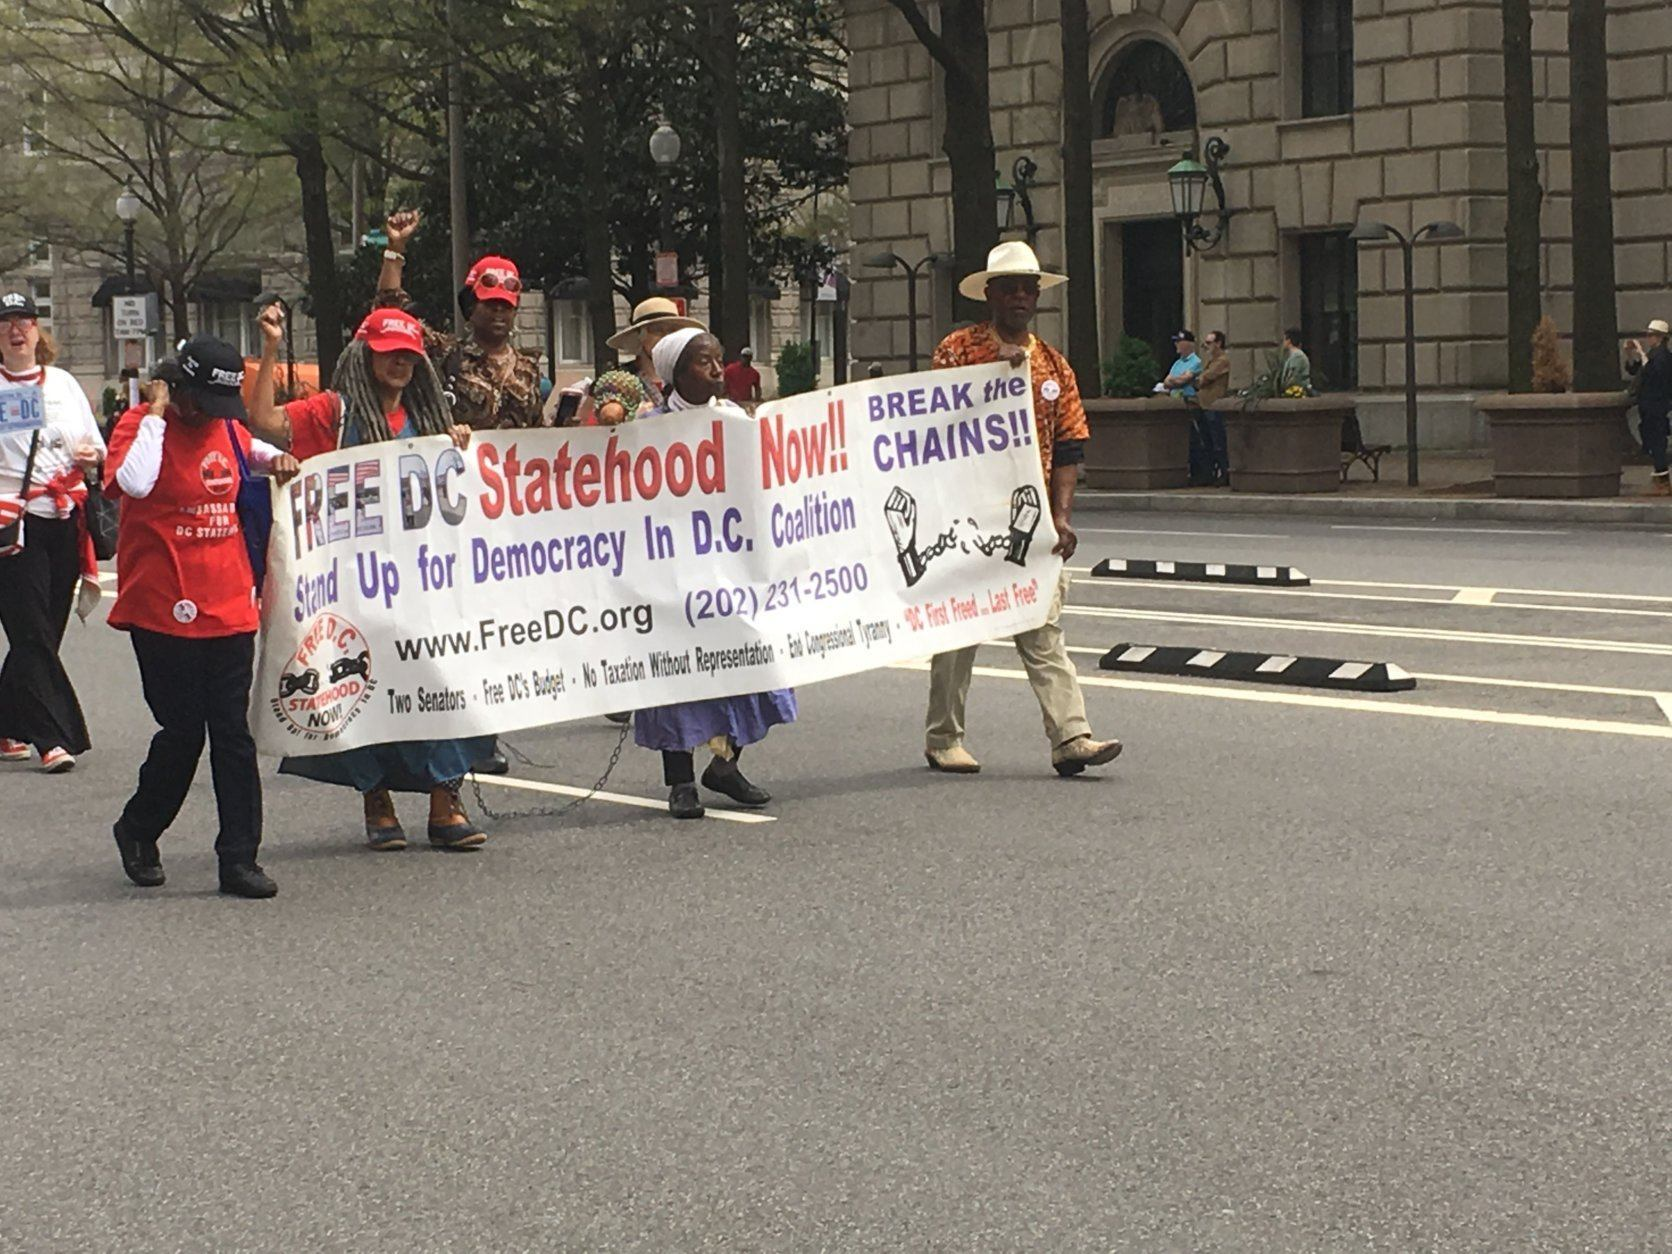 Parade participants hold a banner for statehood during D.C.'s Emancipation Day Parade on Saturday, April 13, 2019. (WTOP/Rick Massimo)